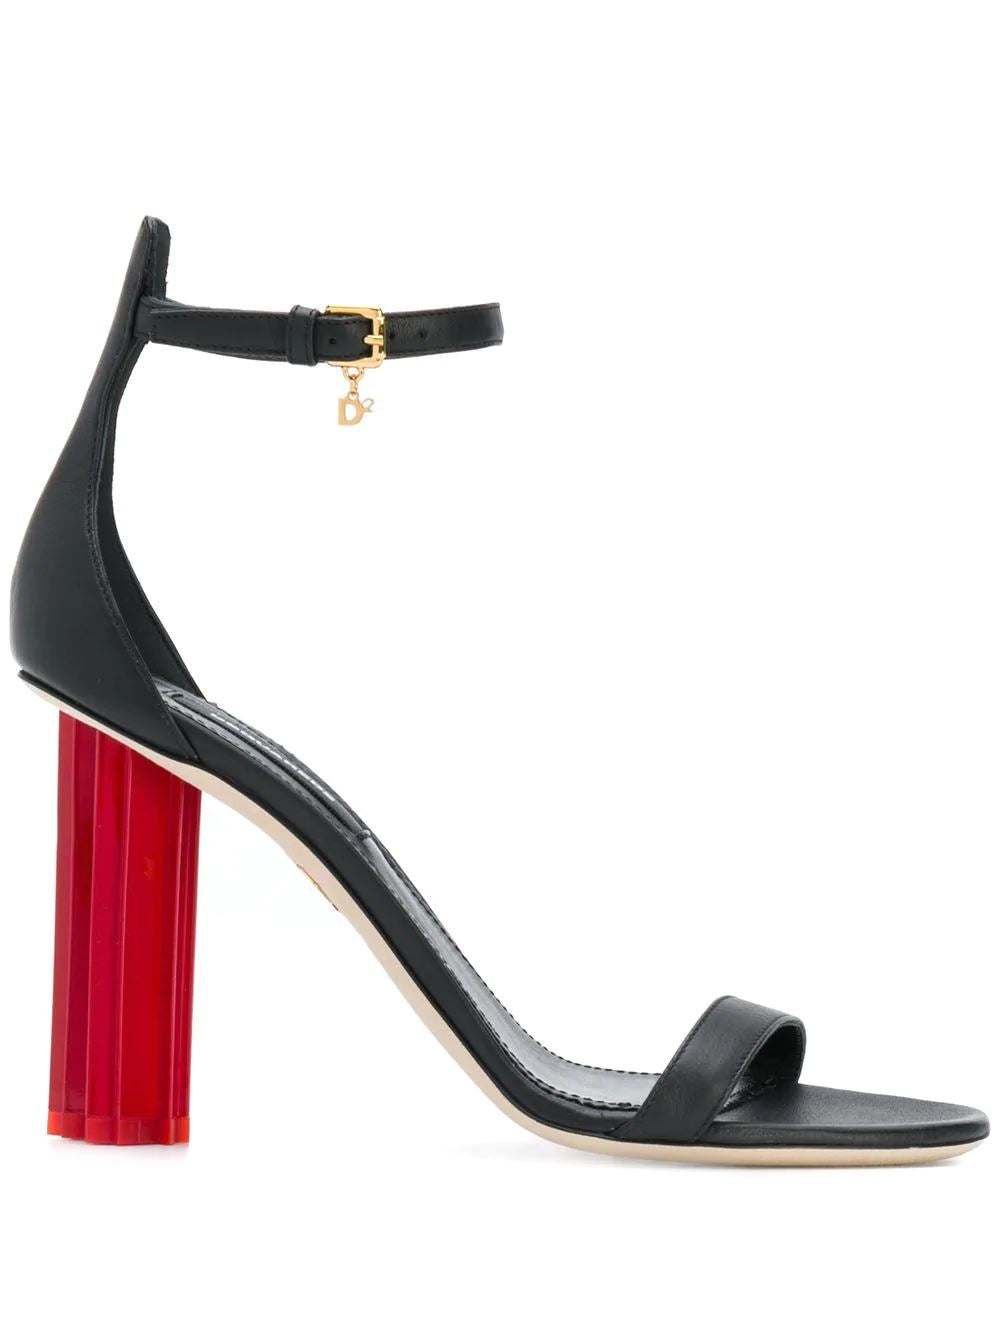 Dsquared2 Leaf Heeled Sandles - Maison De Fashion